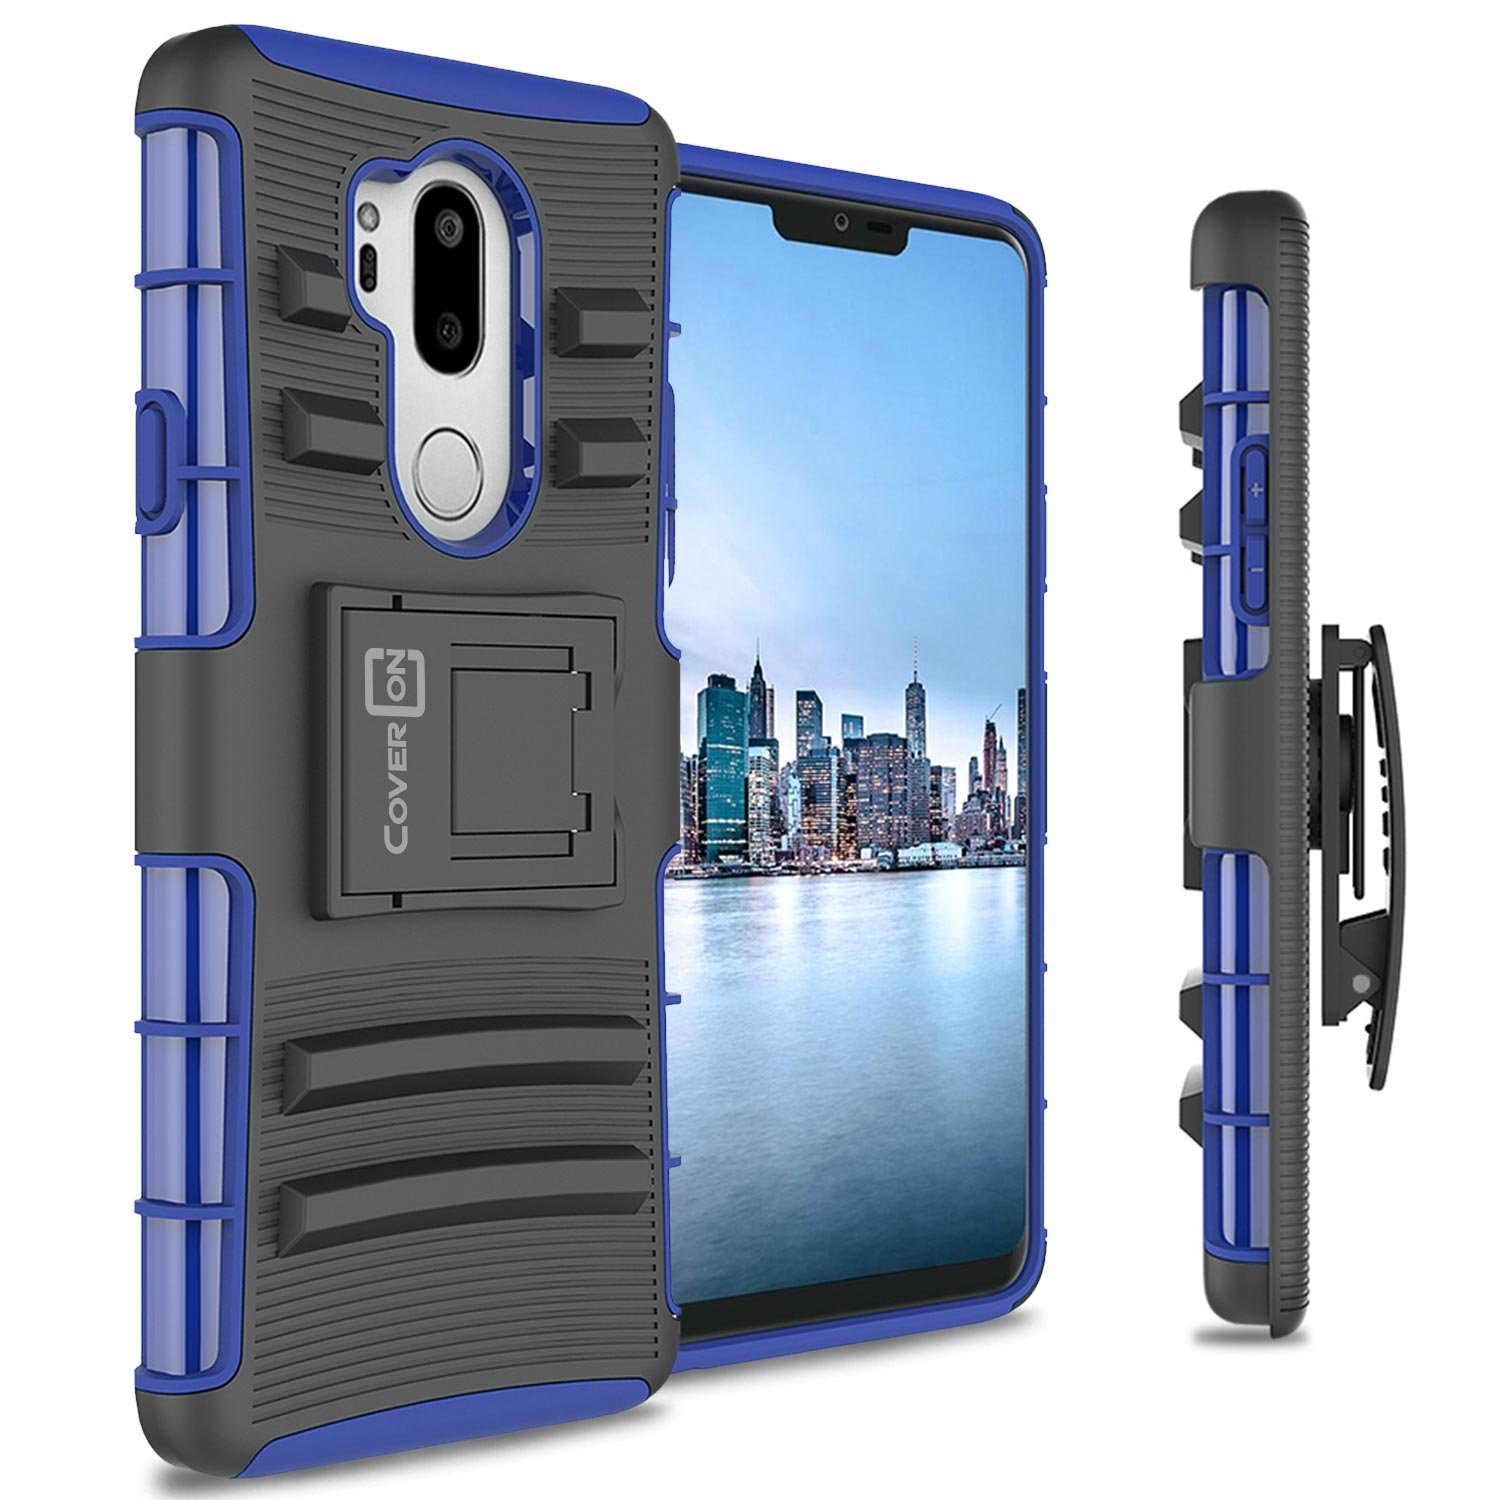 LG G7 ThinQ Holster Case, CoverON Explorer Series Heavy Duty Protective Hybrid Phone Cover with Kickstand and Belt Clip for LG G7 ThinQ - Black 4336769626